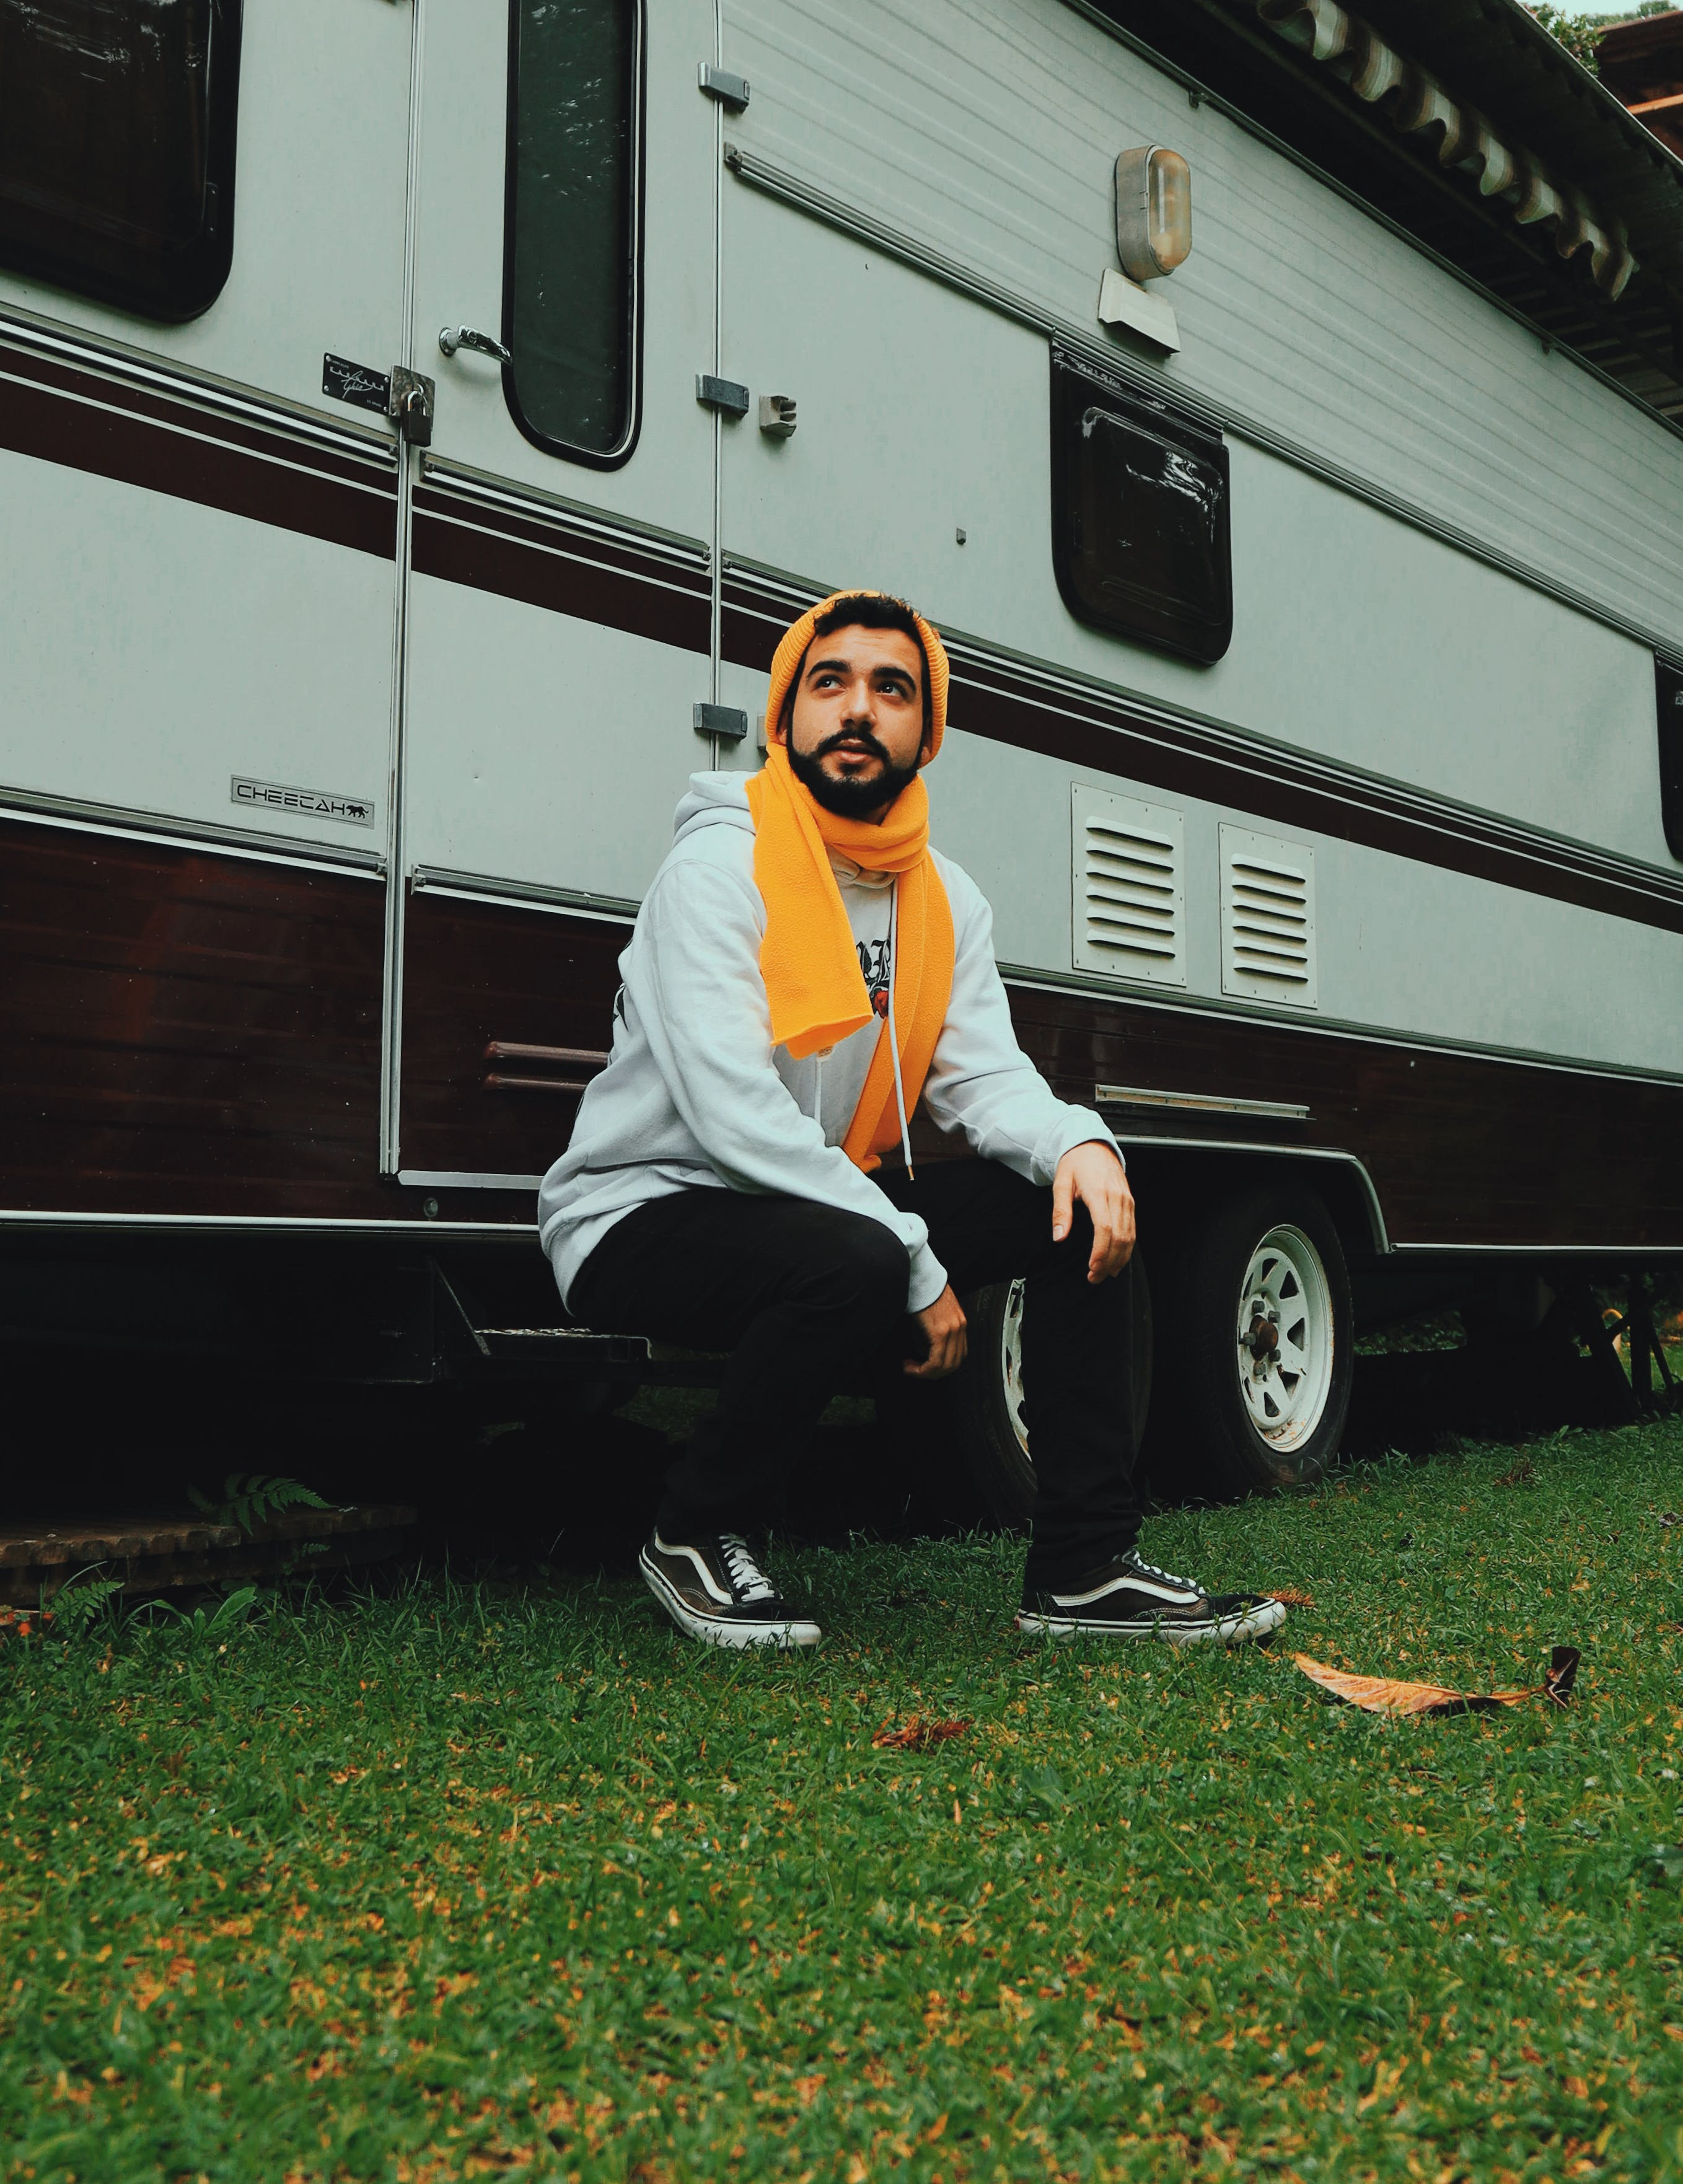 Man Sitting on White and Brown Recreational Vehicle